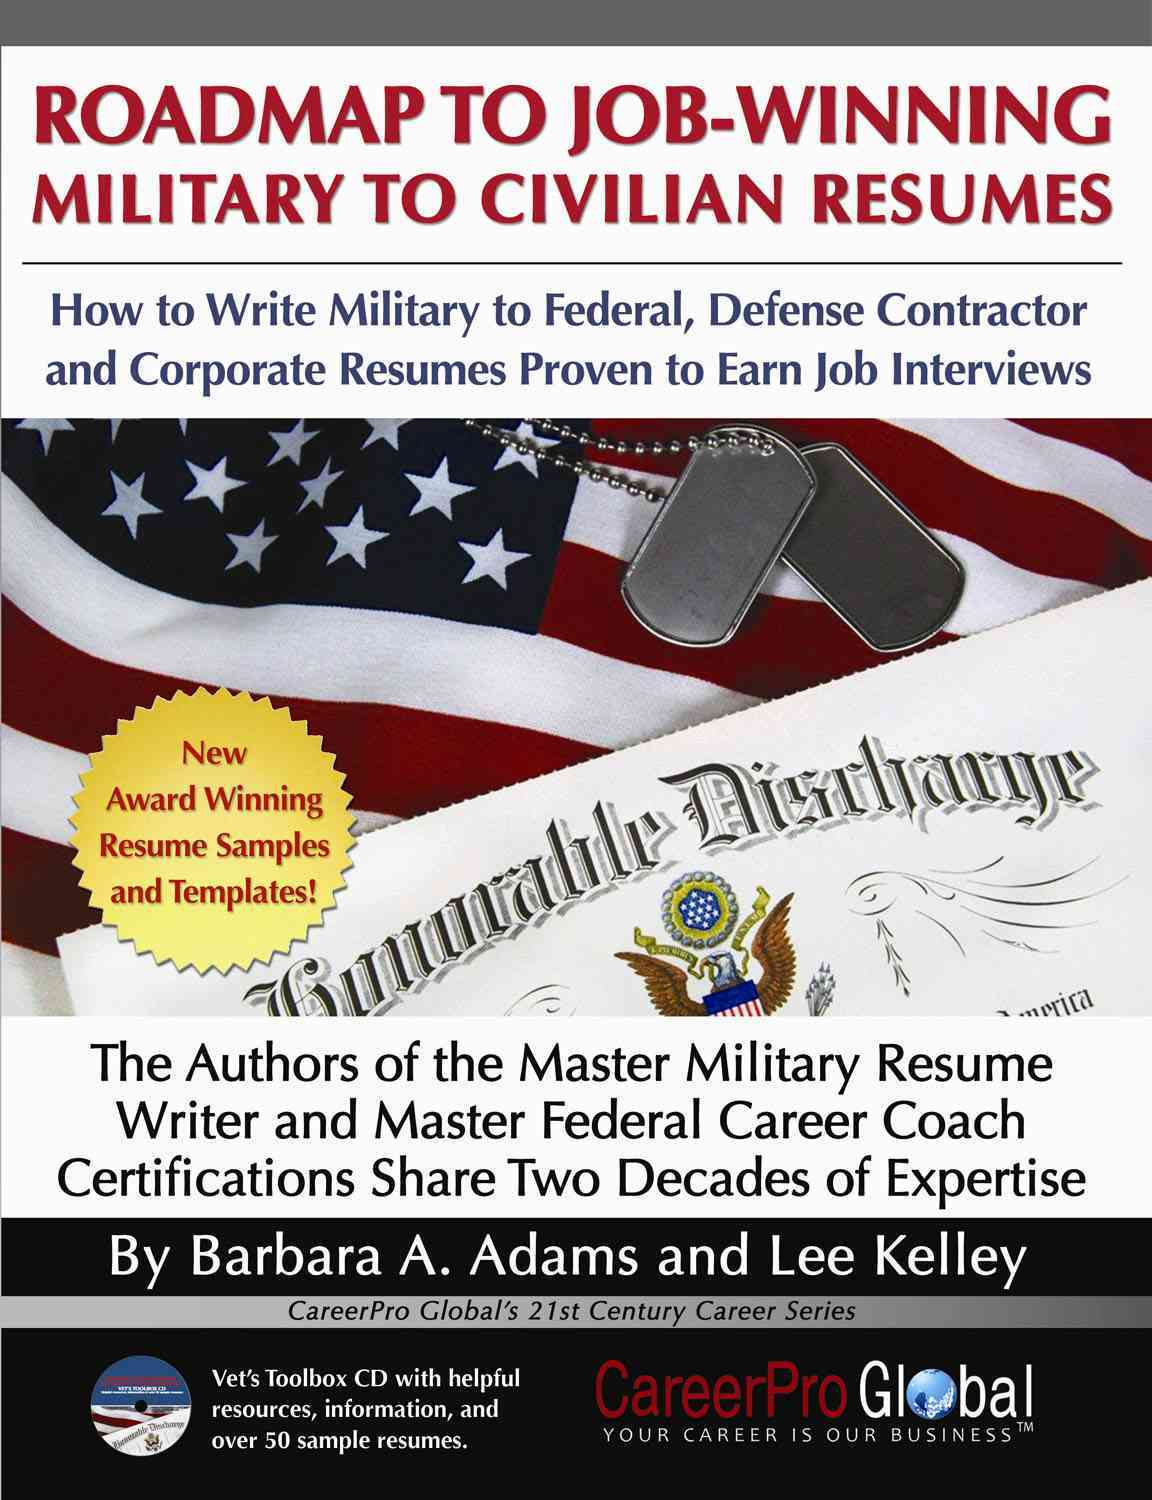 Roadmap to Job-Winning Military to Civilian Resumes By Adams, Barbara/ Kelley, Lee